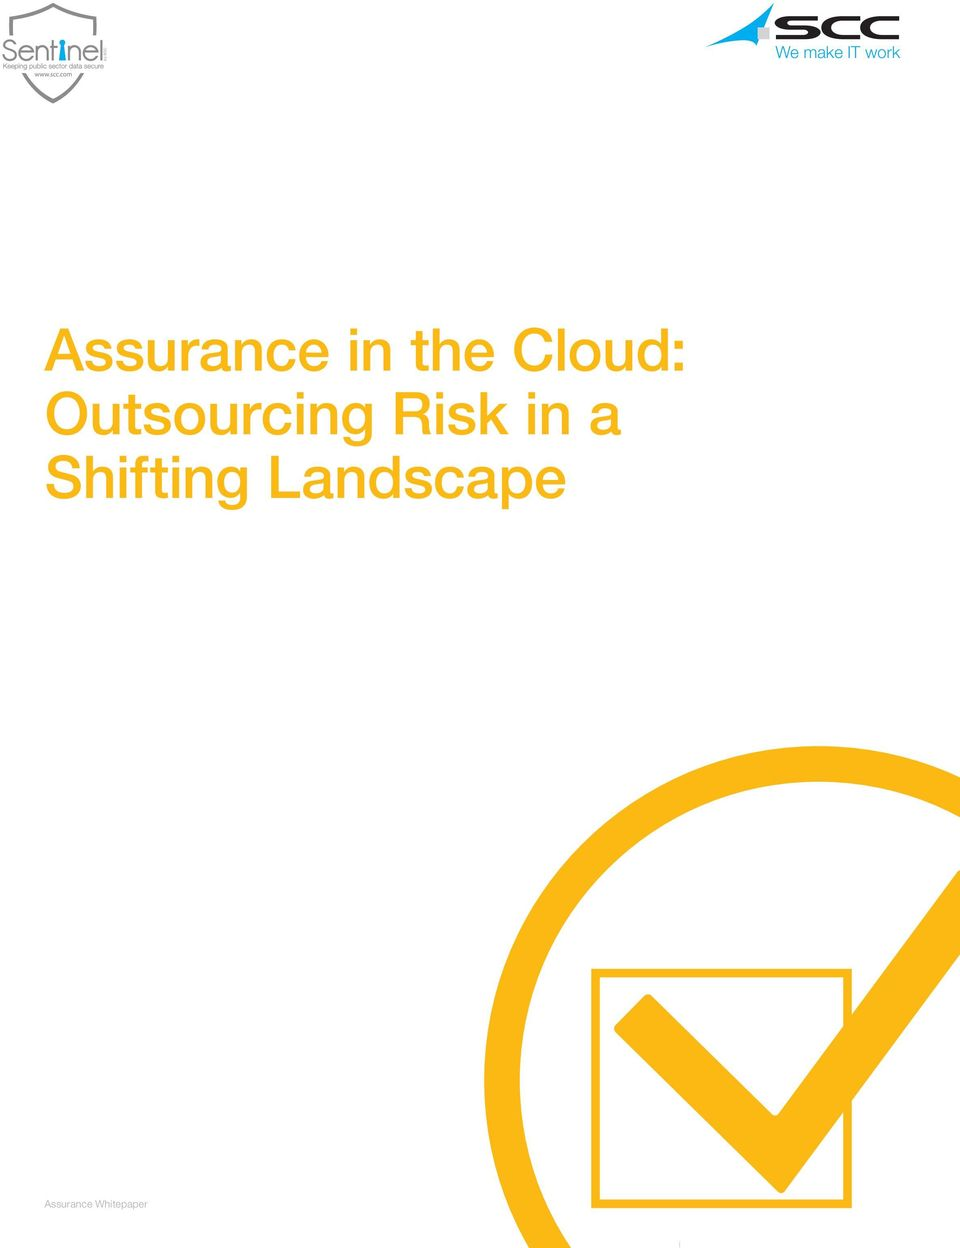 Cloud: Outsourcing